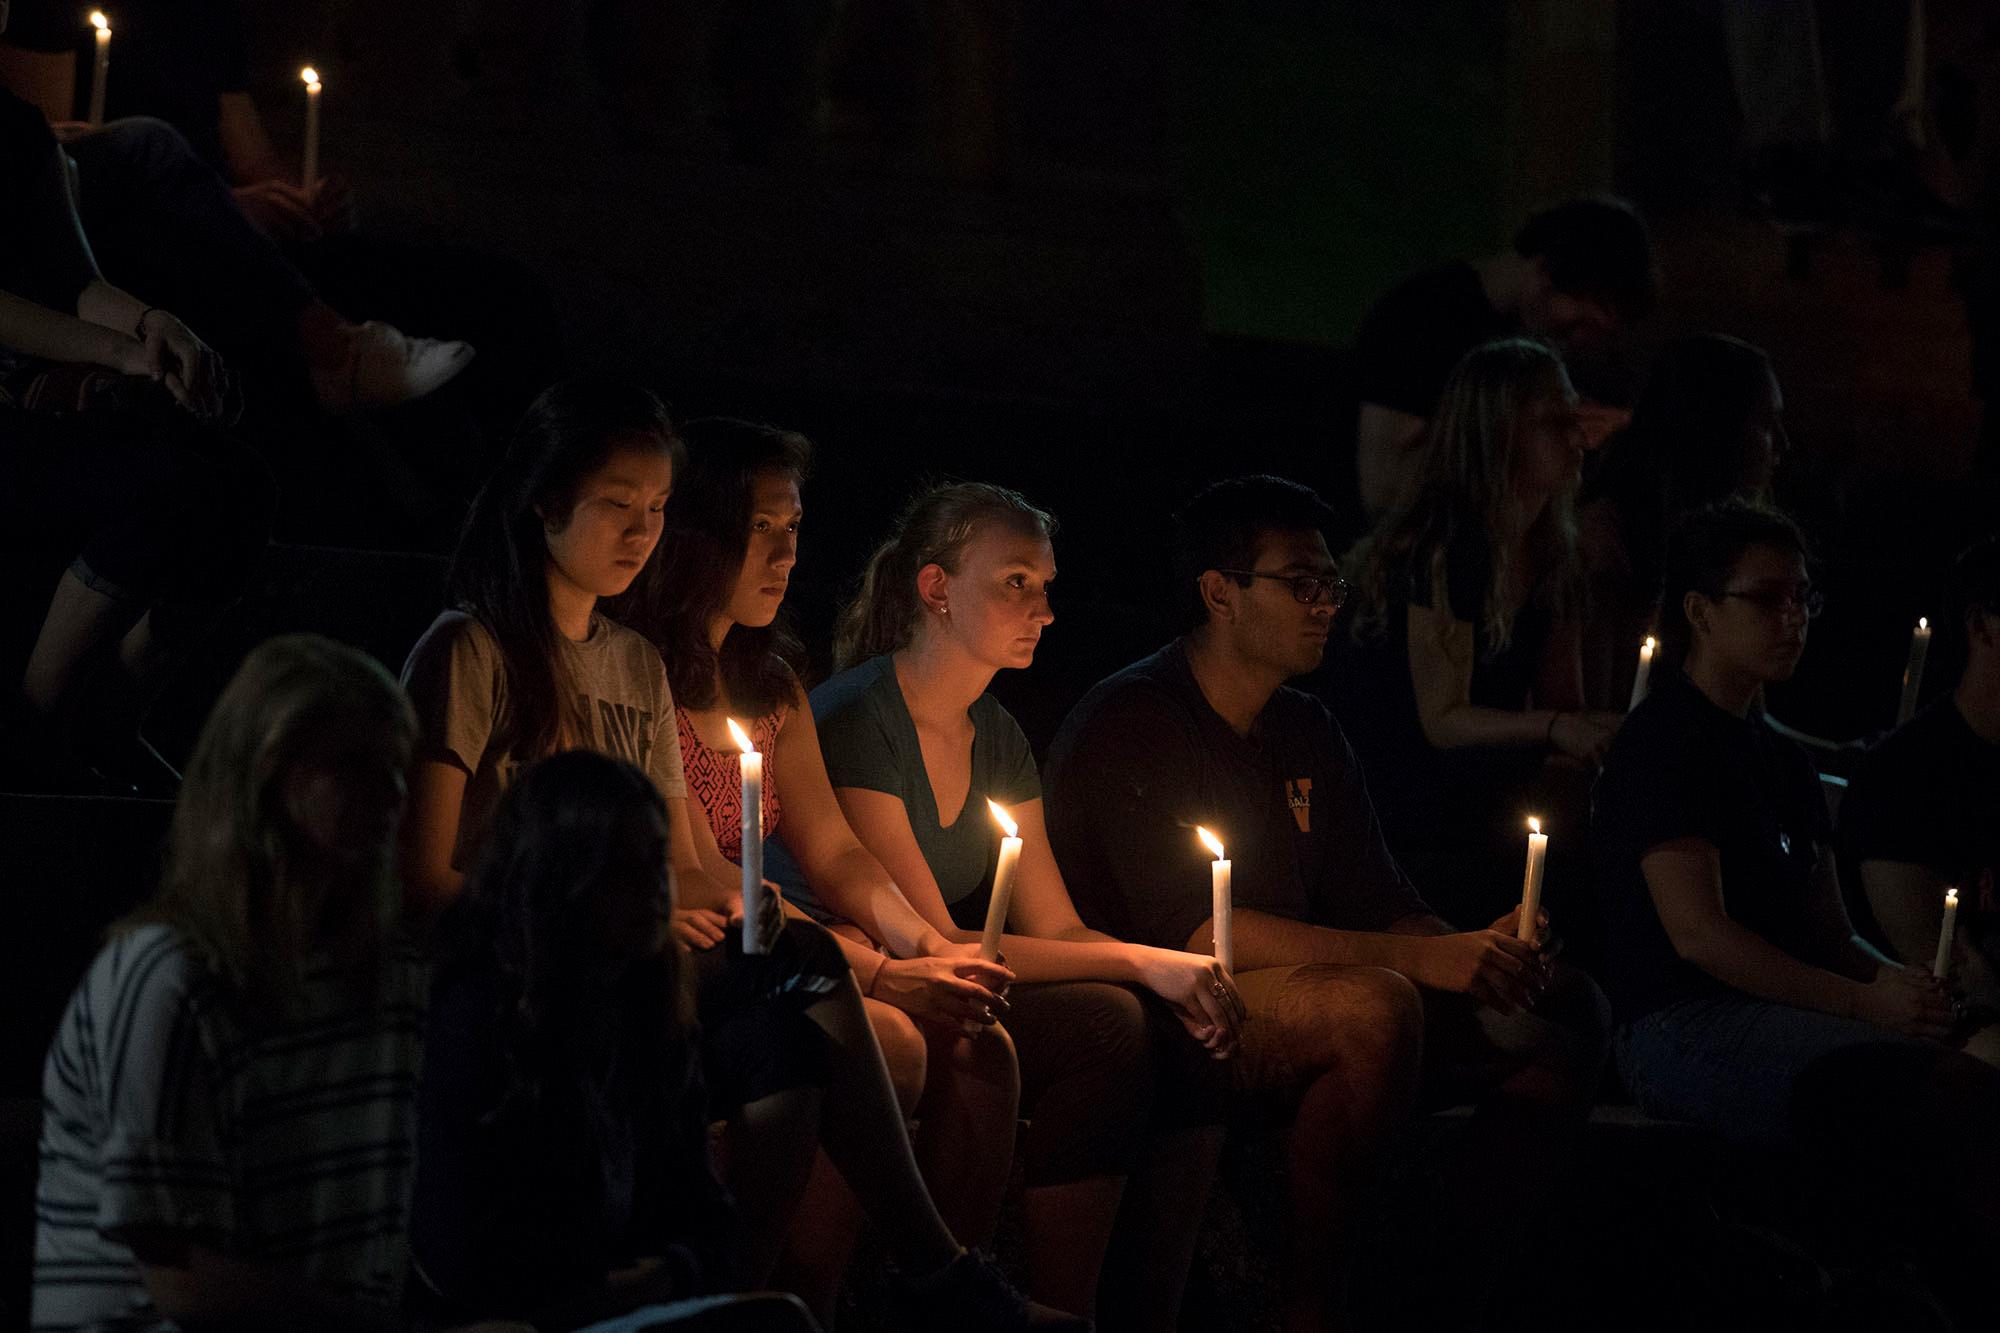 Students and other members of the UVA community gathered on Grounds on Tuesday night for a vigil in remembrance of Otto Warmbier. (Photos by Dan Addison, University Communications)